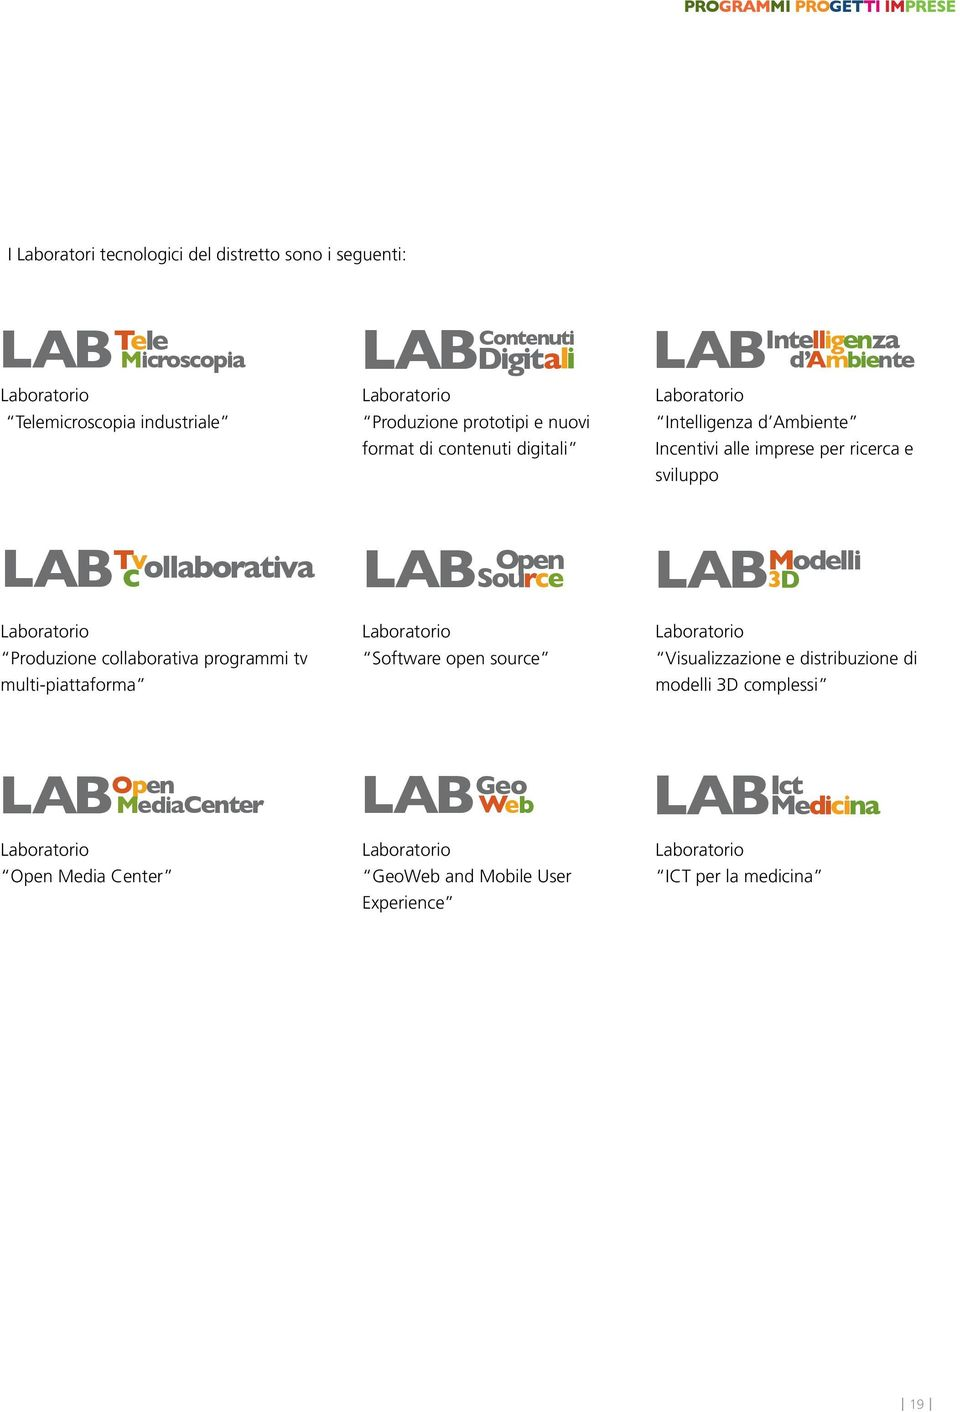 ollaborativa Laboratorio Produzione collaborativa programmi tv multi-piattaforma LAB Open Source Laboratorio Software open source LAB3D Modelli Laboratorio Visualizzazione e